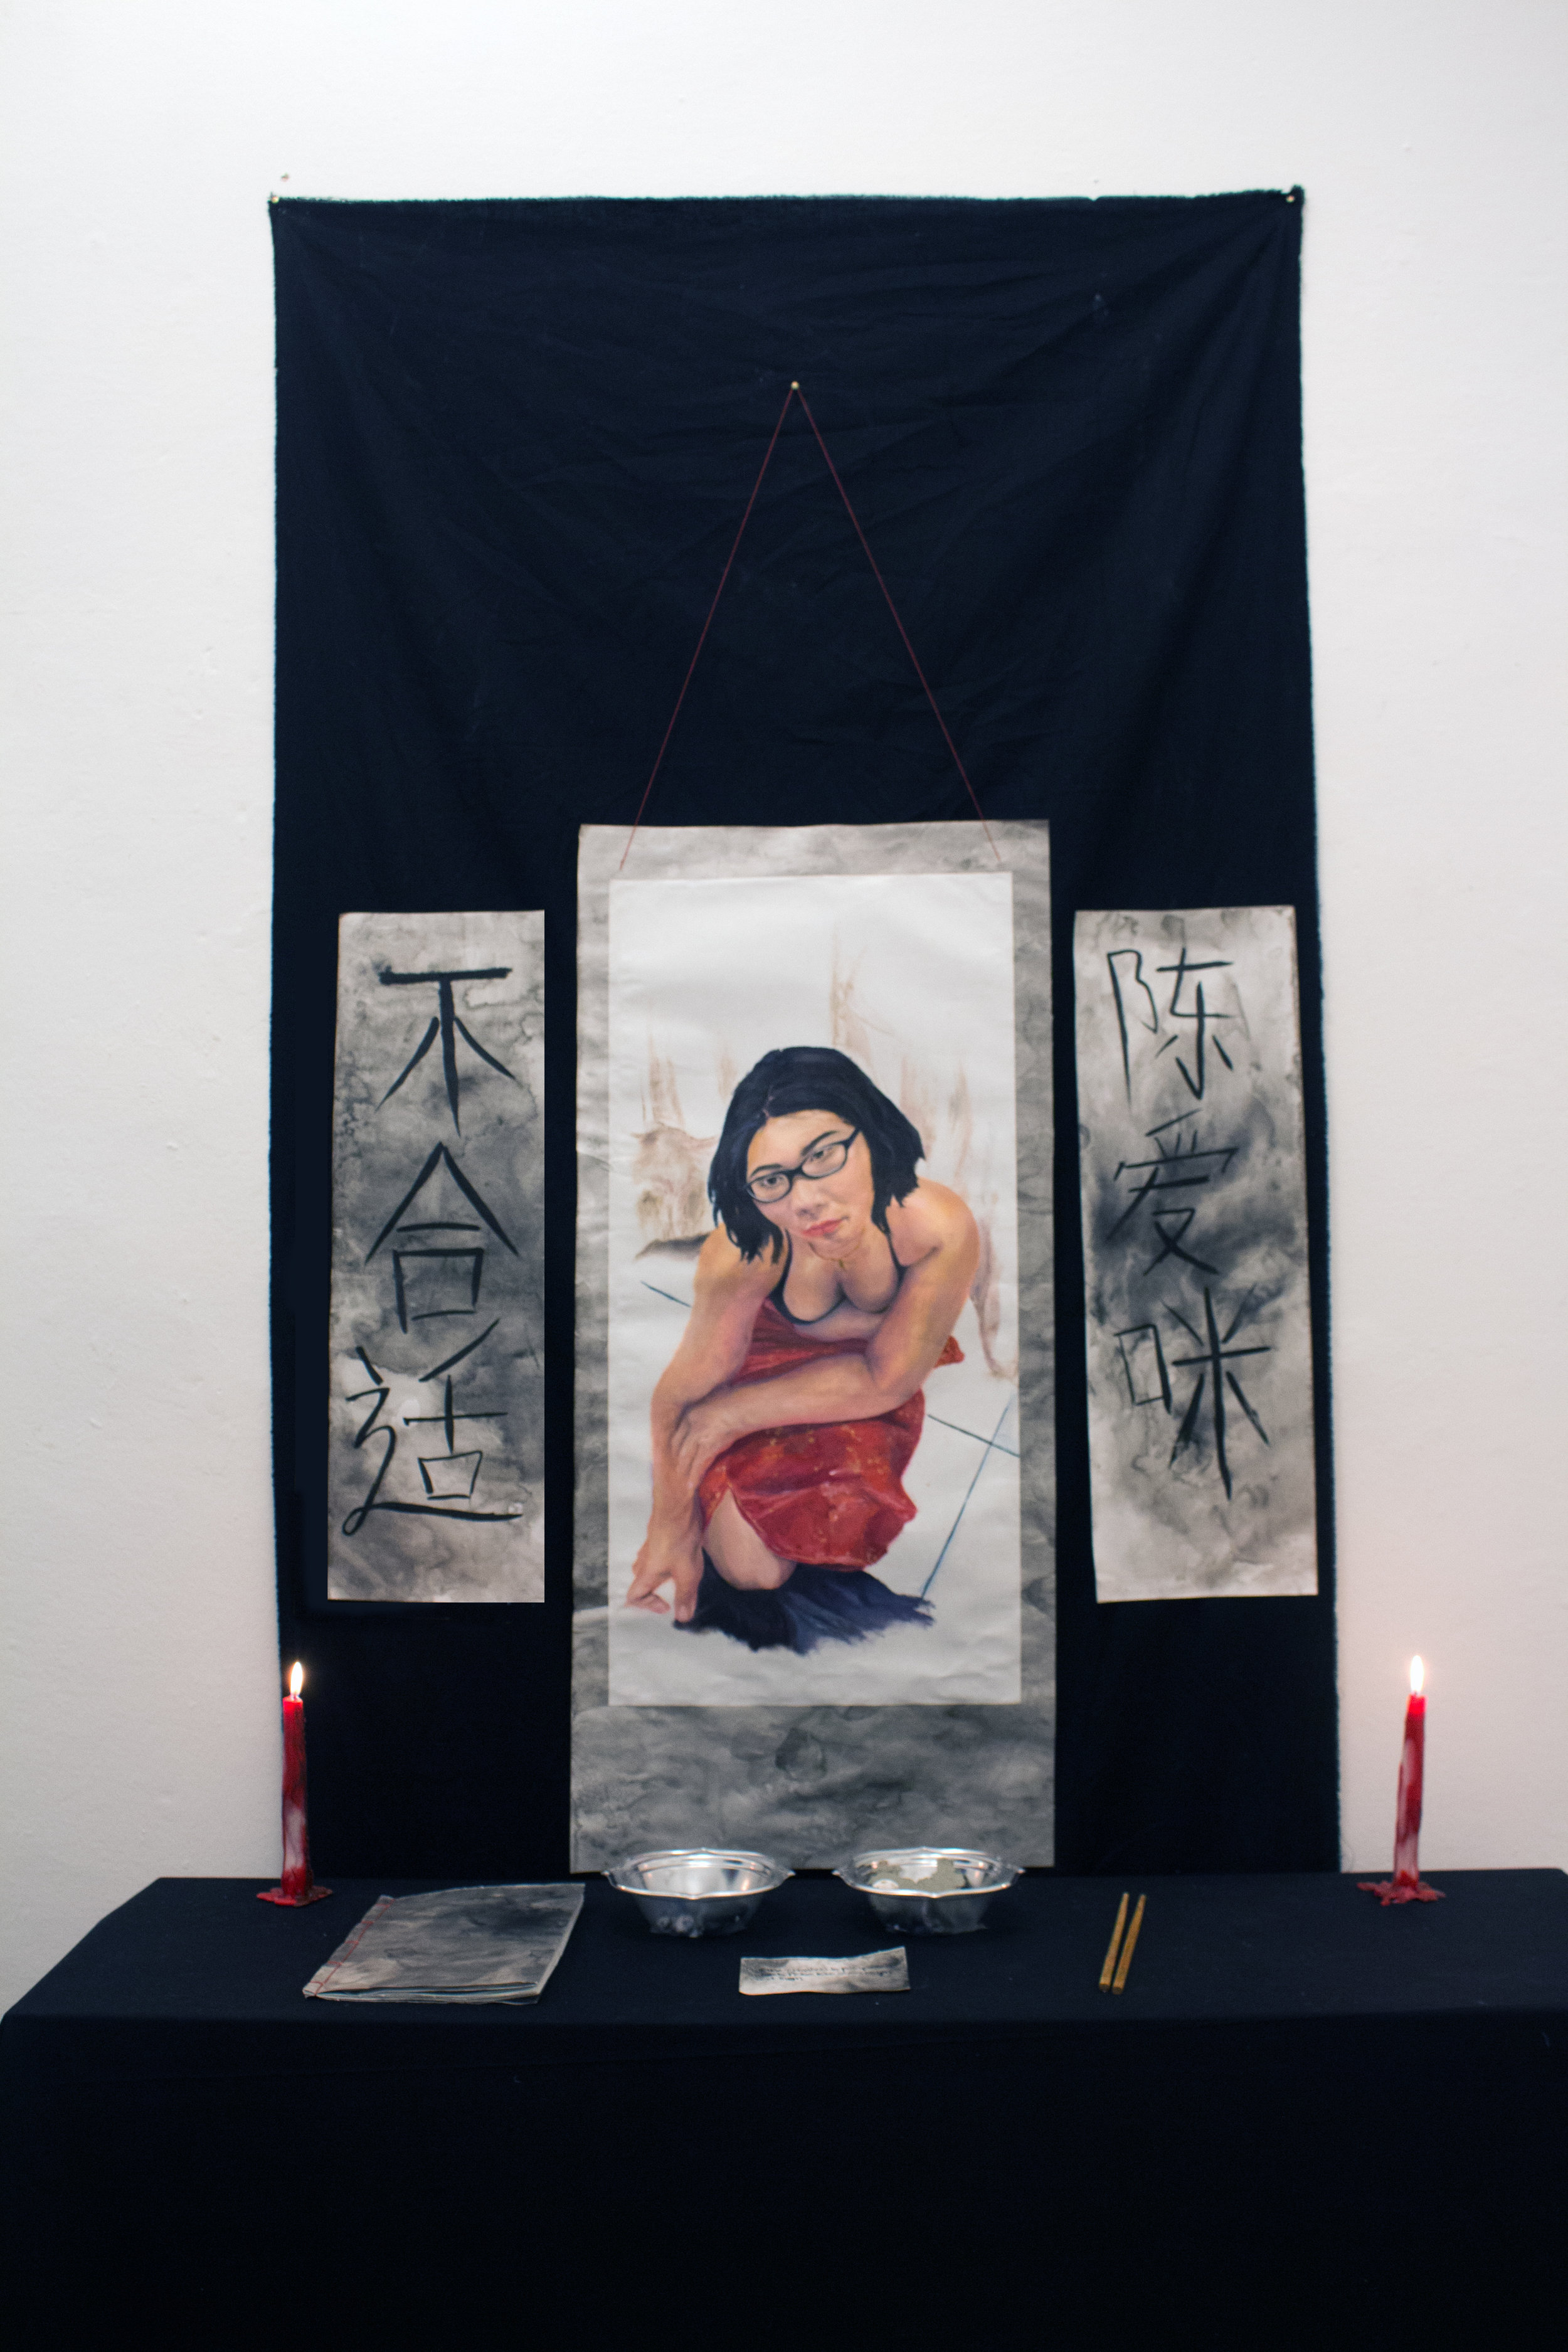 - Scroll painting: oil paint and india ink on rice paper, threadBook: monoprints with oil paint Chine-collé, ink,thread on rice paperAltar: candles, fabric, clay, marbles, styrofoam, bowls,ink, pen, chopsticks on tableDimensions variable2017